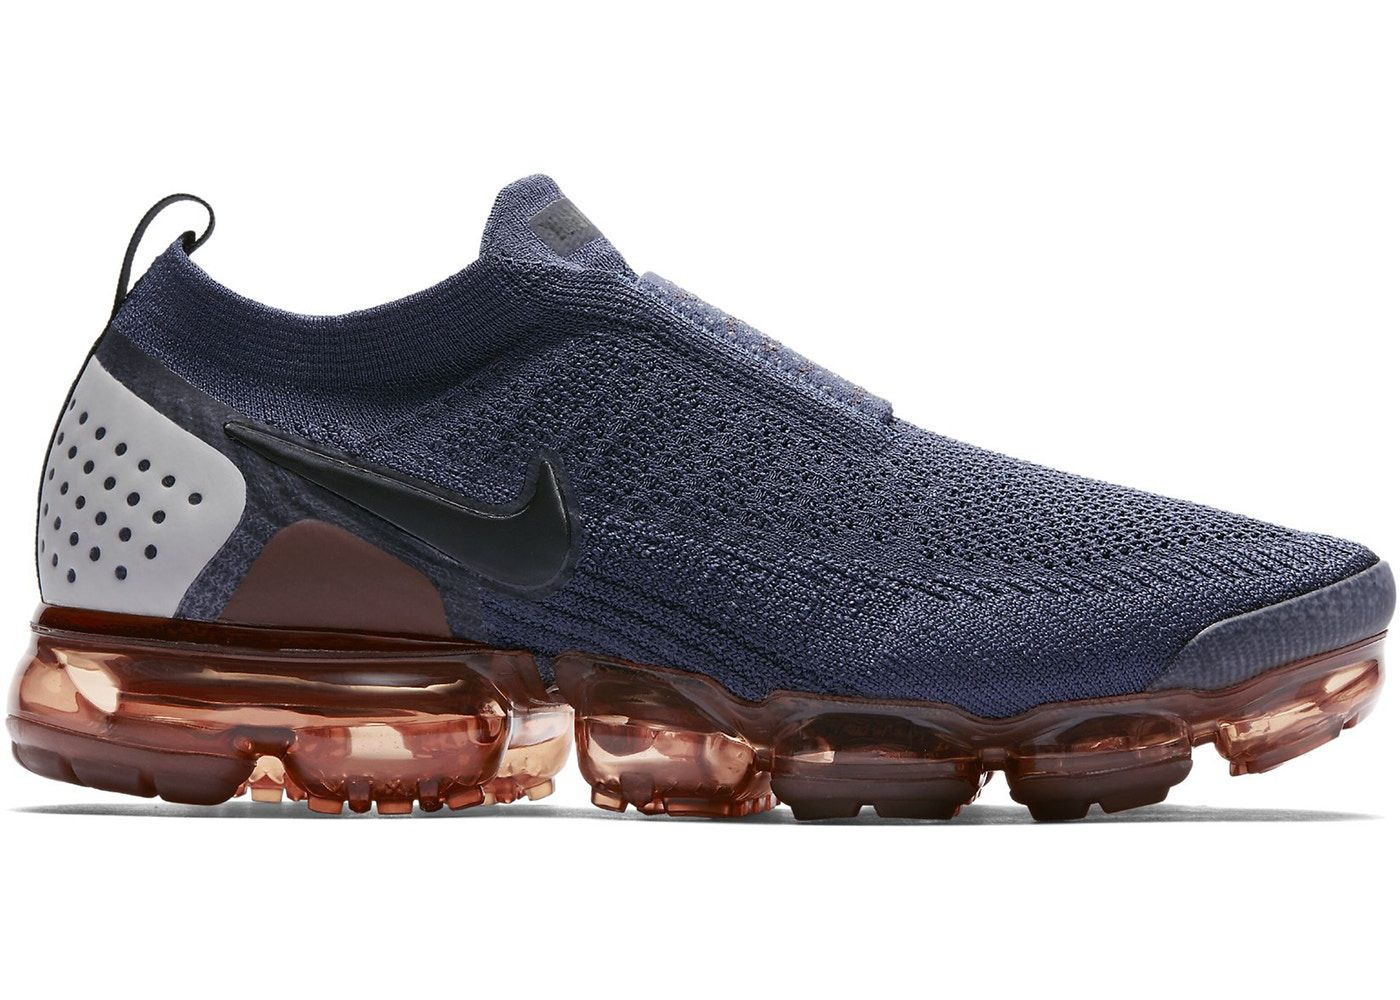 new product exclusive shoes best wholesaler Nike VaporMax Moc 2 Thunder Blue | Sneakers, Nike, Nike air vapormax